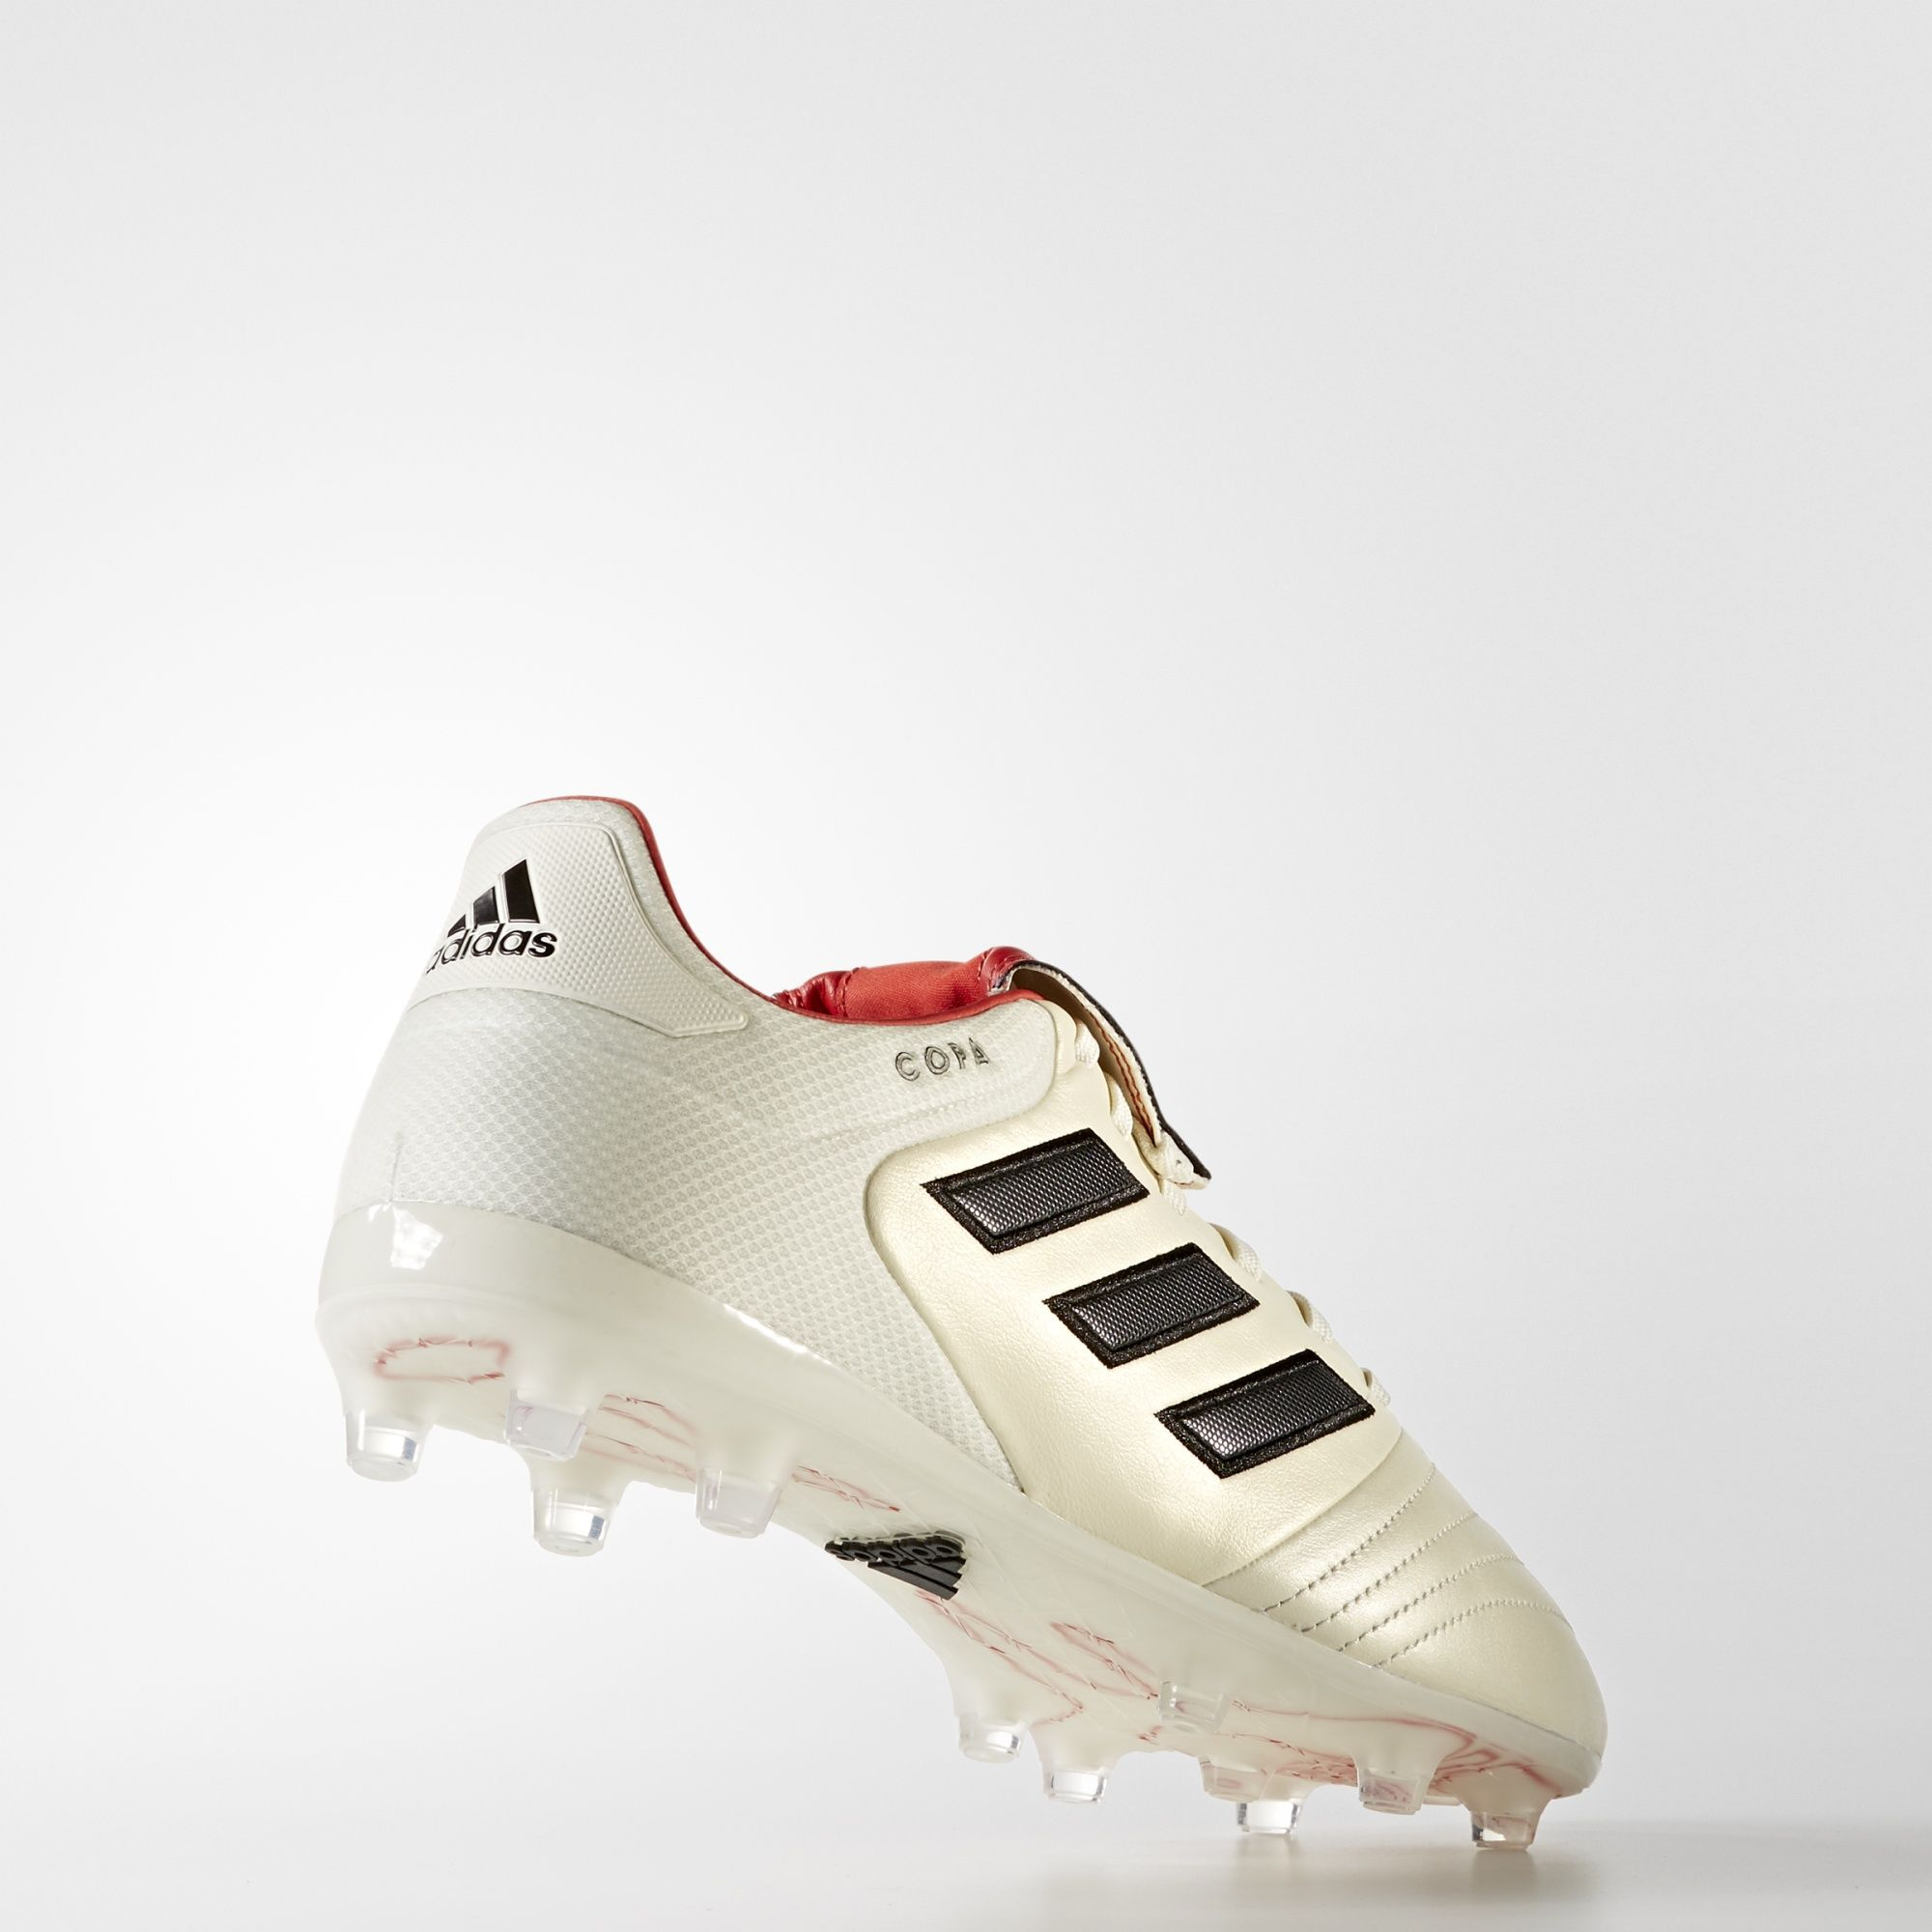 new styles 2630e 1262a comFootball-bootsadidas-copa-gloro-17-2 - Limited-Edition Adidas ...